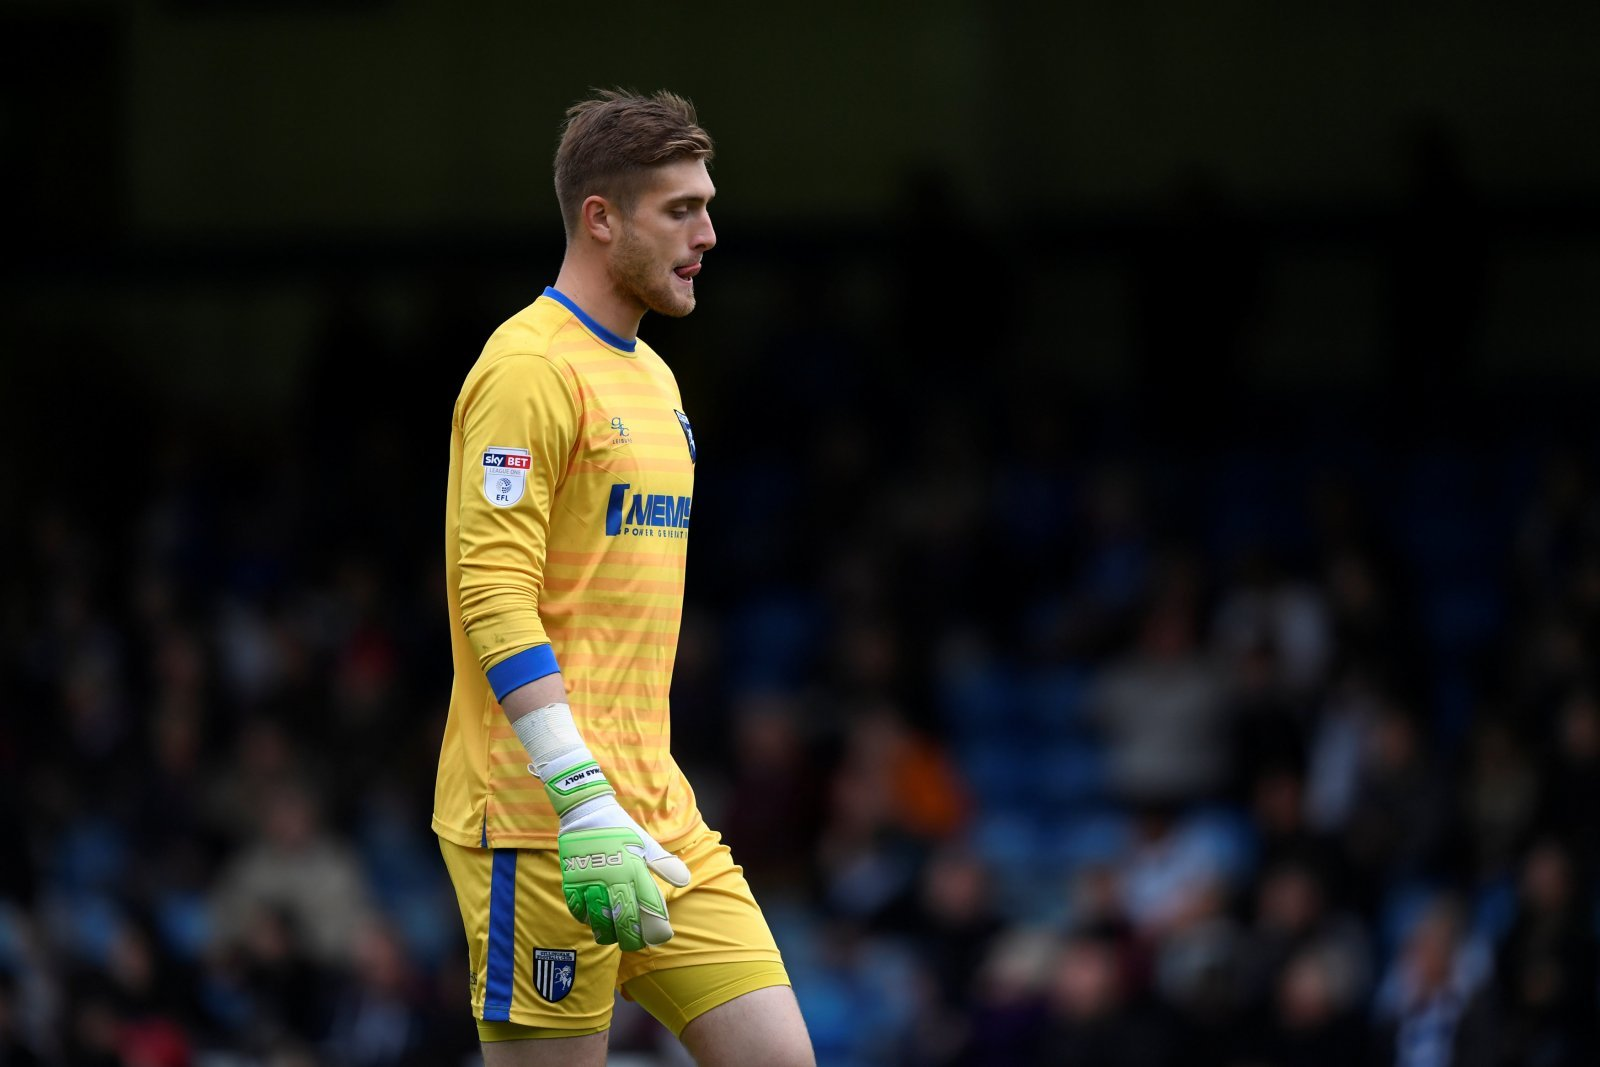 Arsenal's interest in League One goalie could mean the end for Martinez